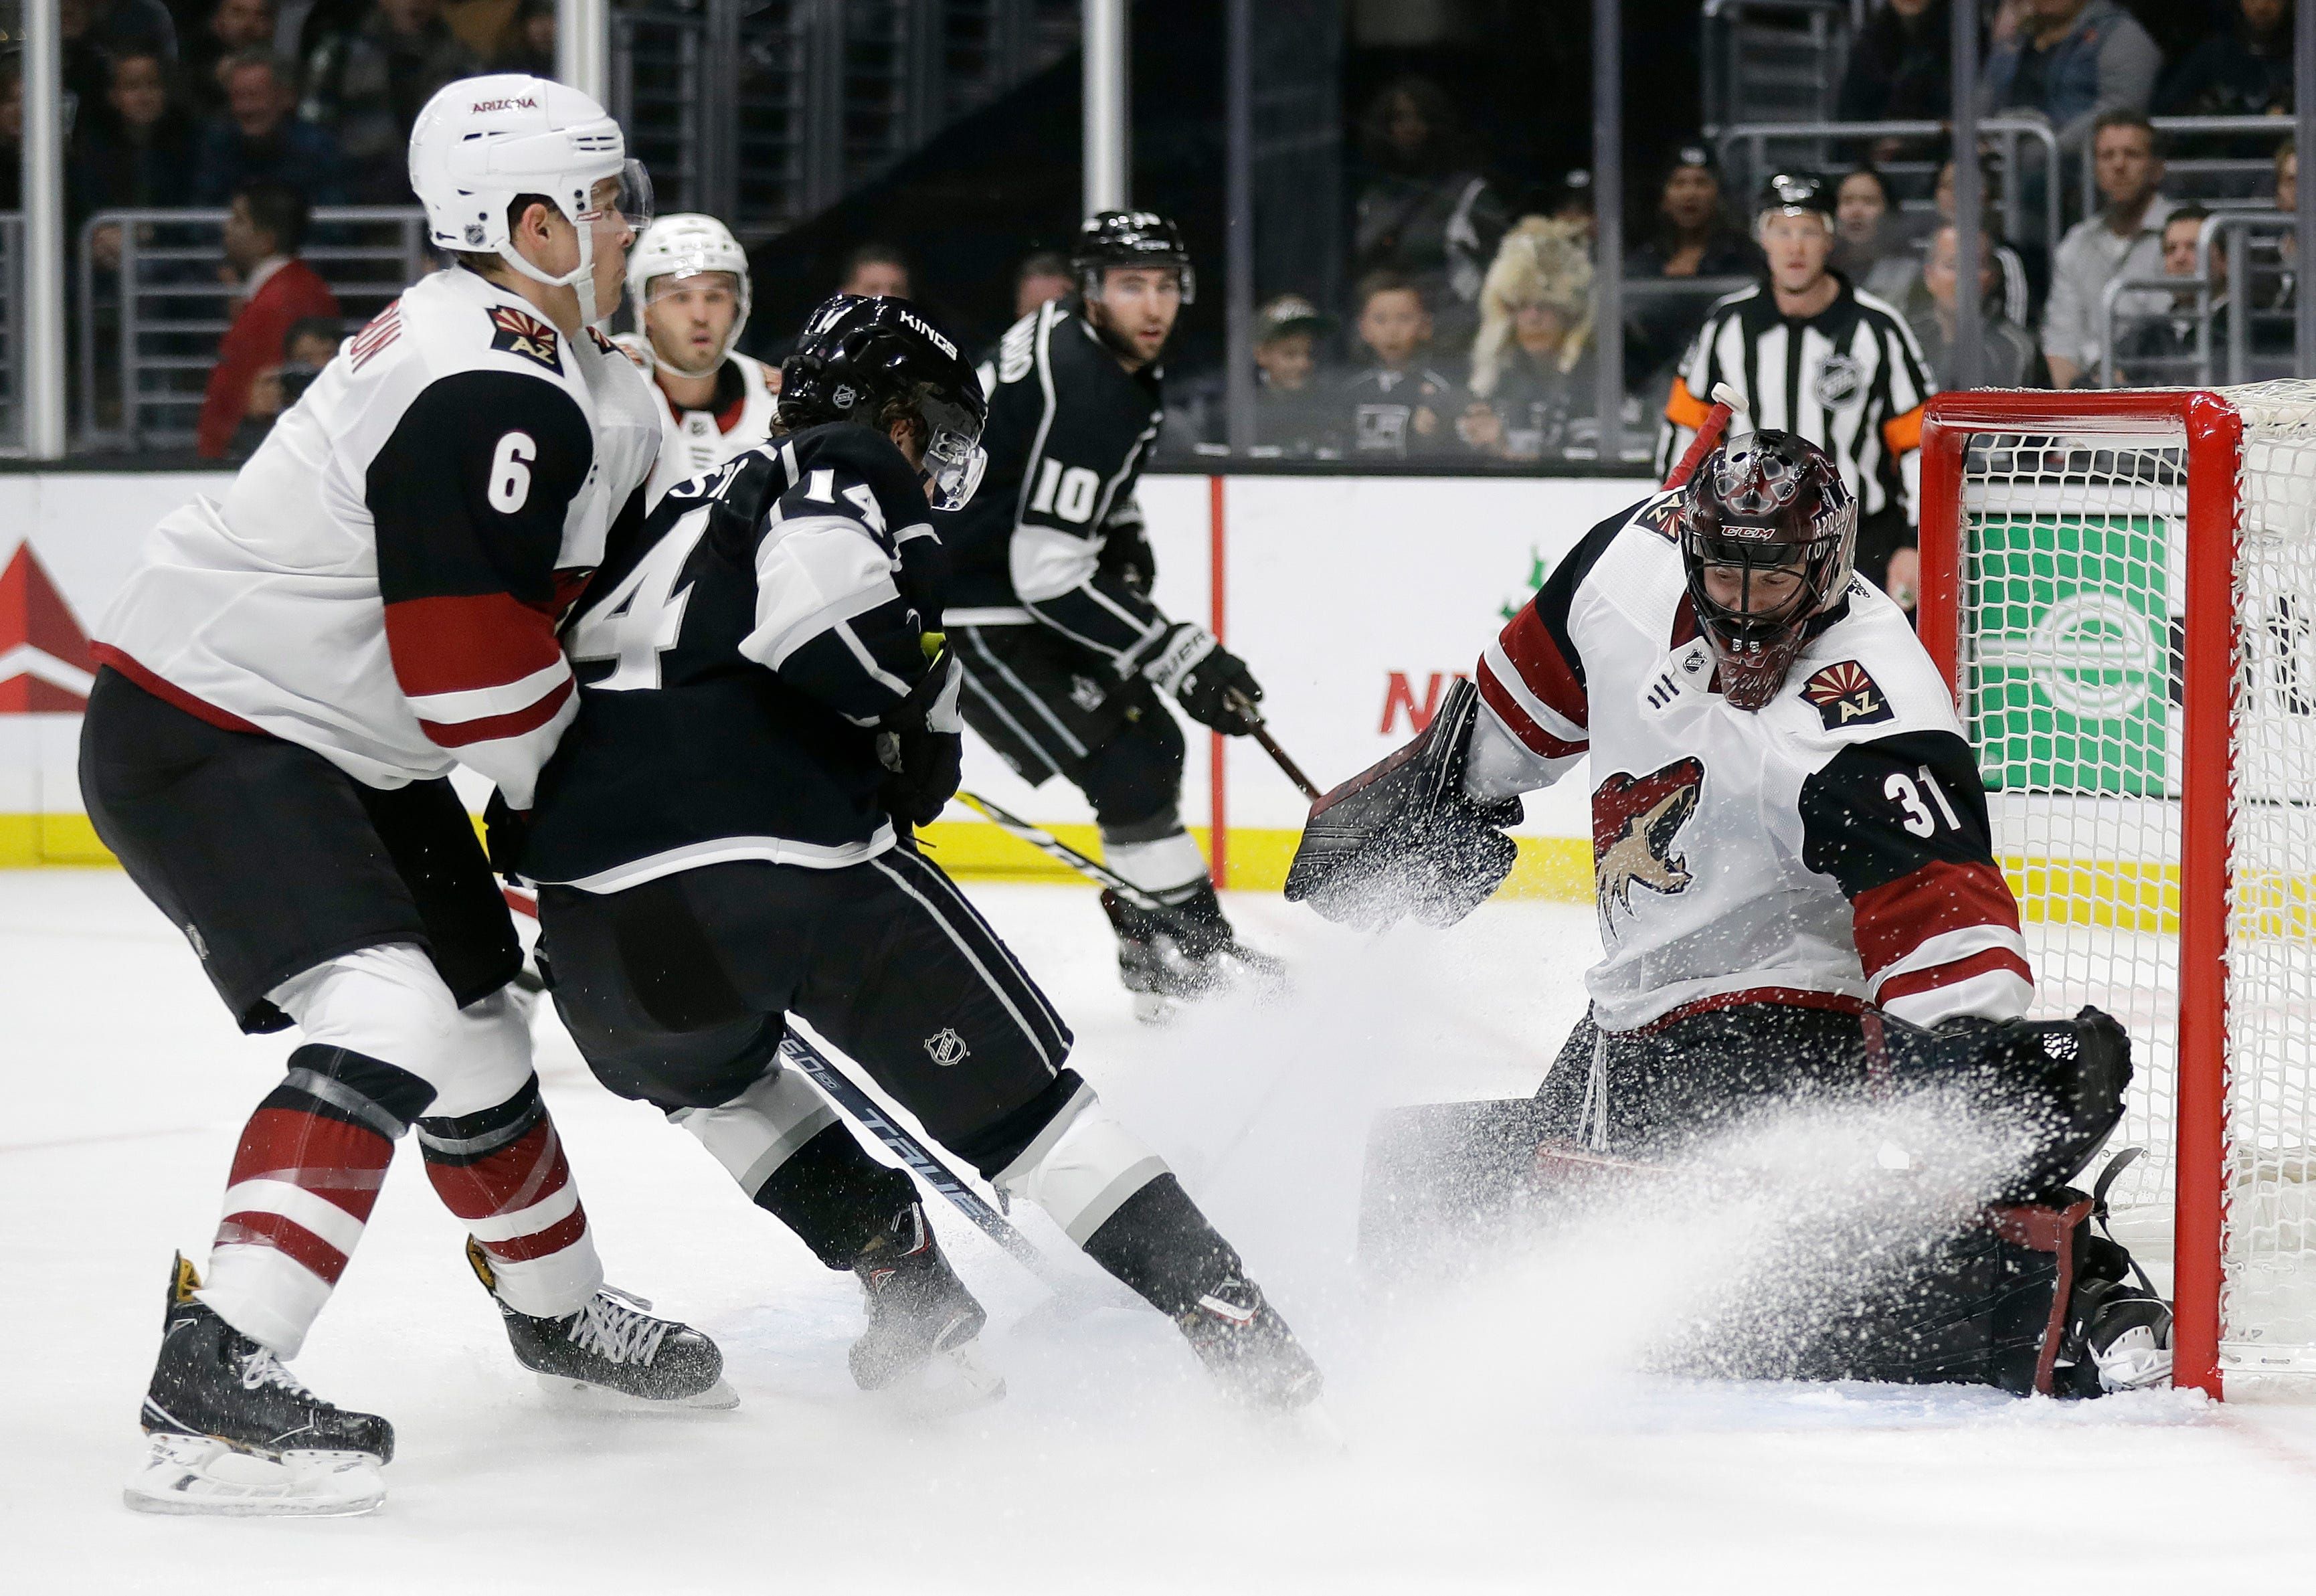 Game Day: Adin Hill gets another start as Coyotes look to win fifth straight game